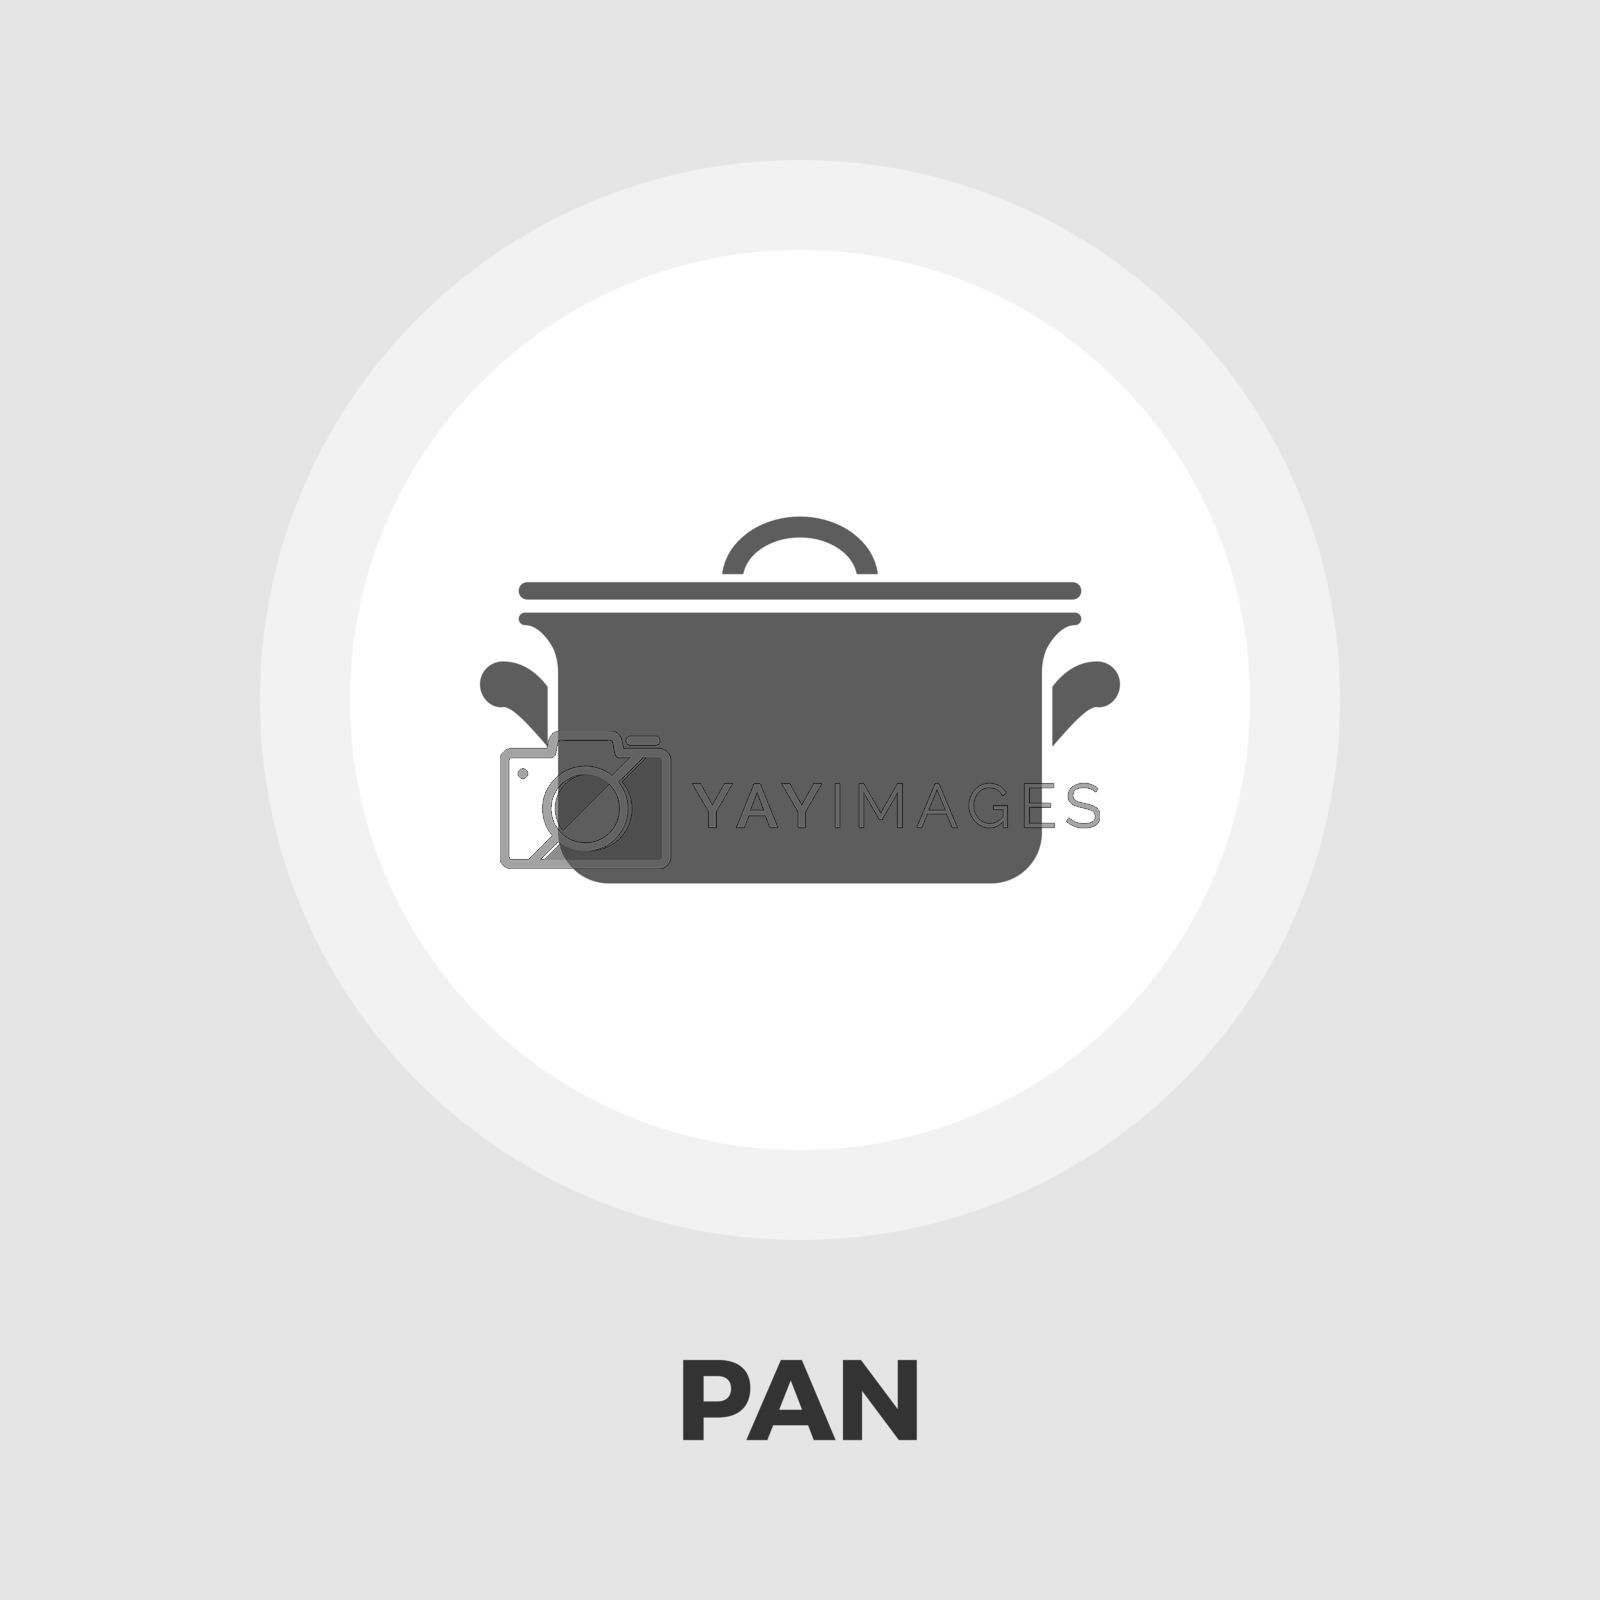 Pan icon vector. Flat icon isolated on the white background. Editable EPS file. Vector illustration.